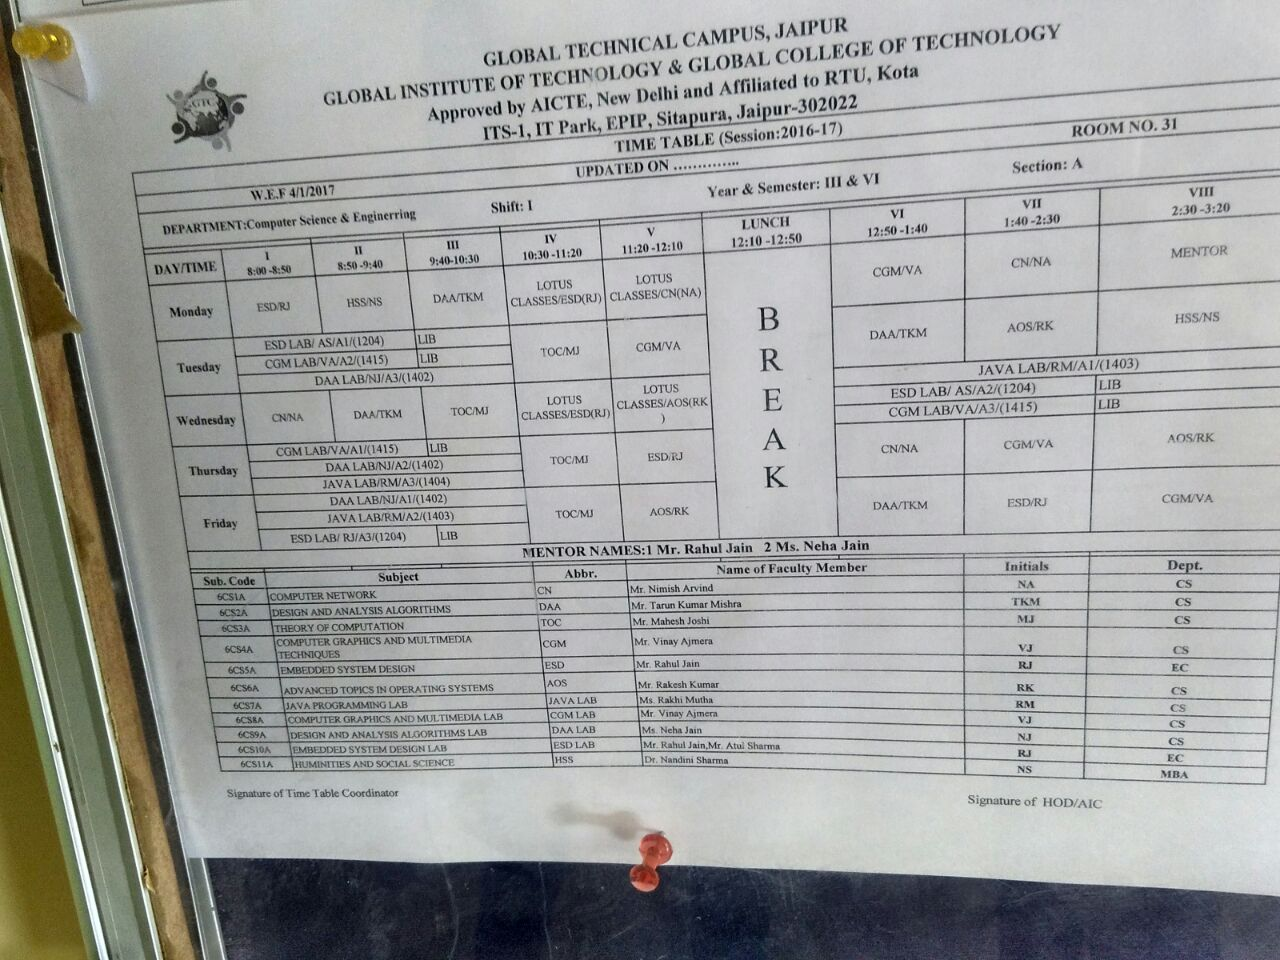 Global institute of technology for 6th sem time table